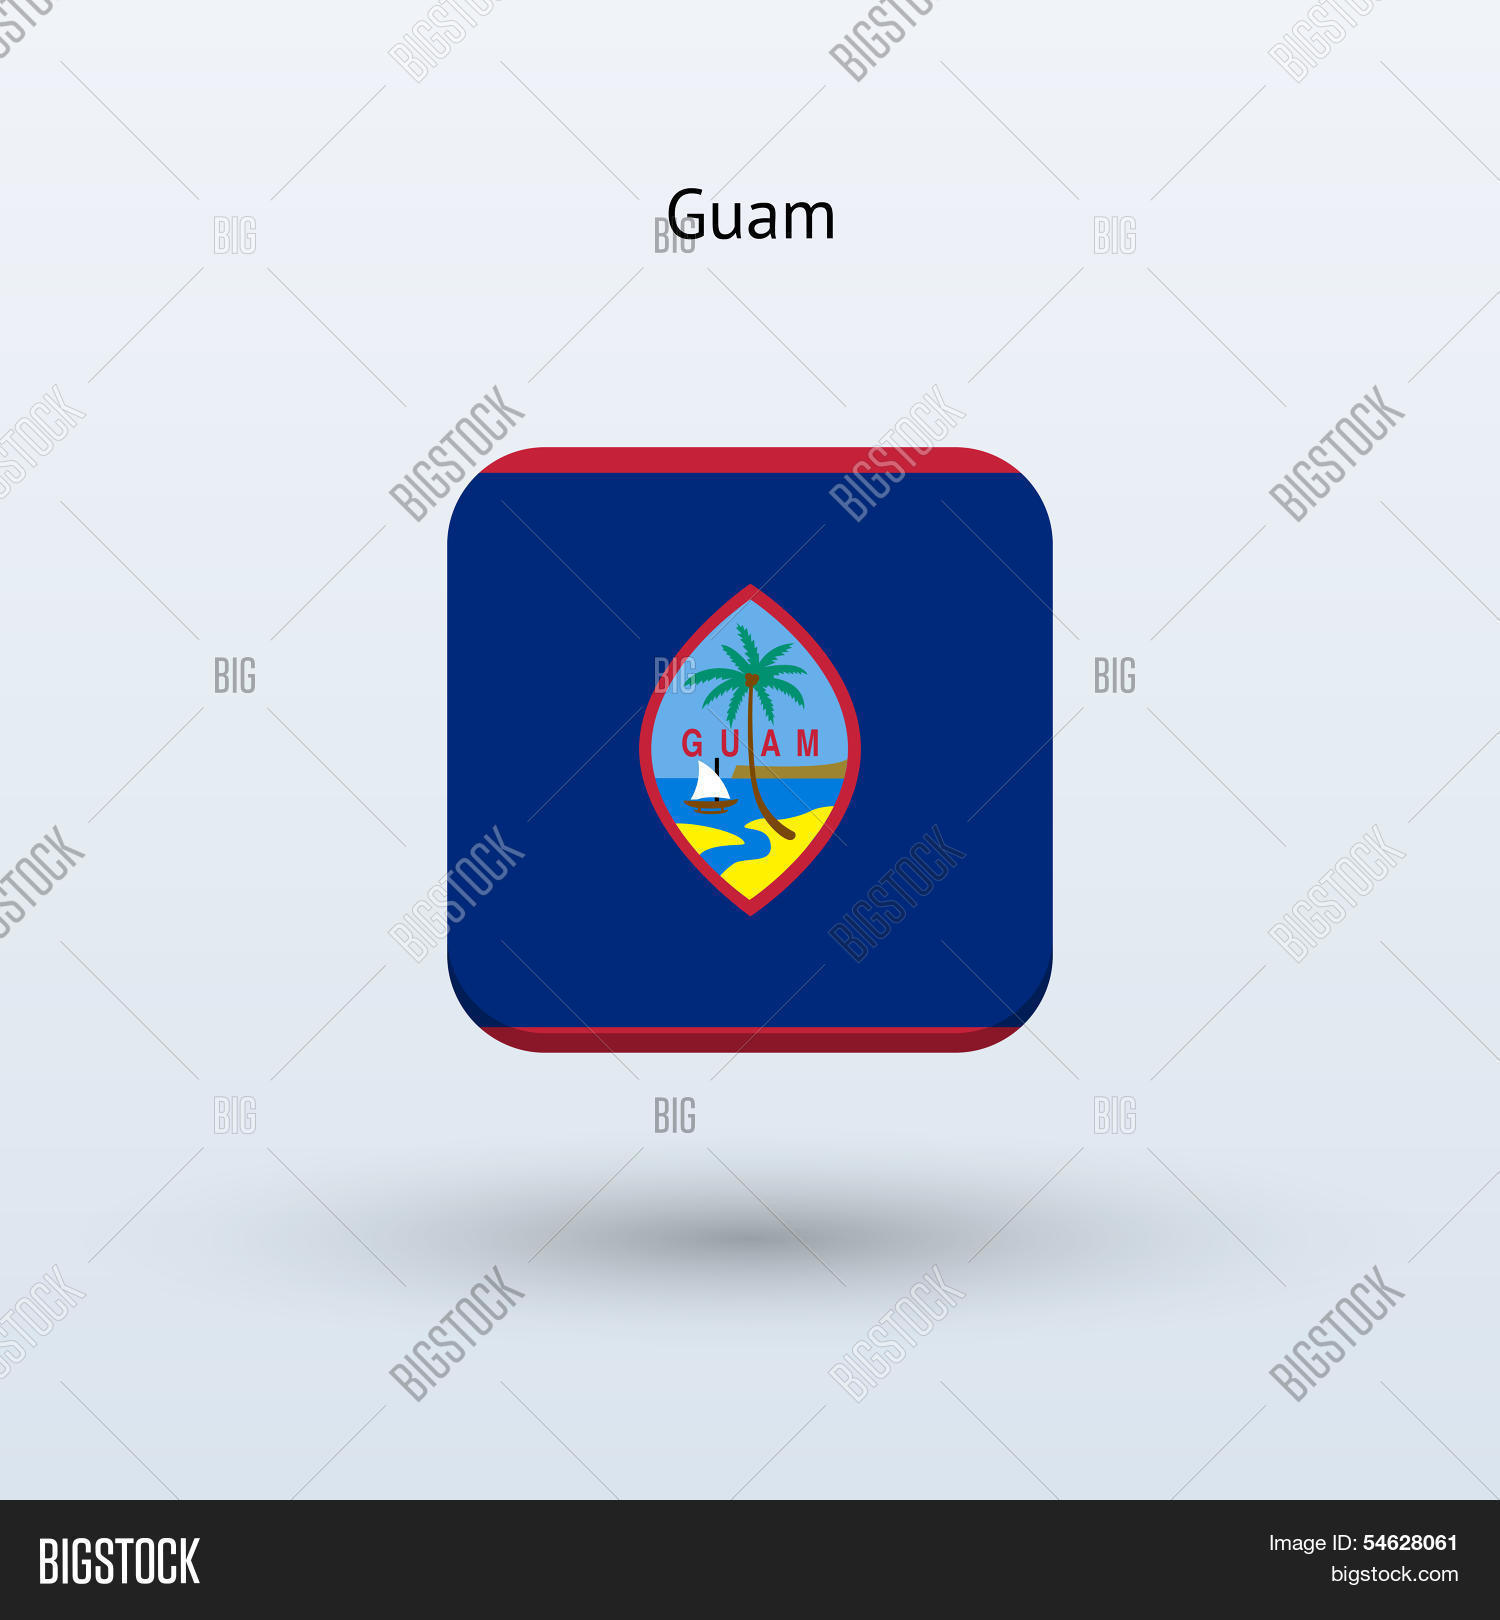 an analysis of the design dimensions and symbolism of the guam flag Senate bows to braun on symbol of confederacy argued that the issue was not the design patent but the symbolism that the our best news and analysis.